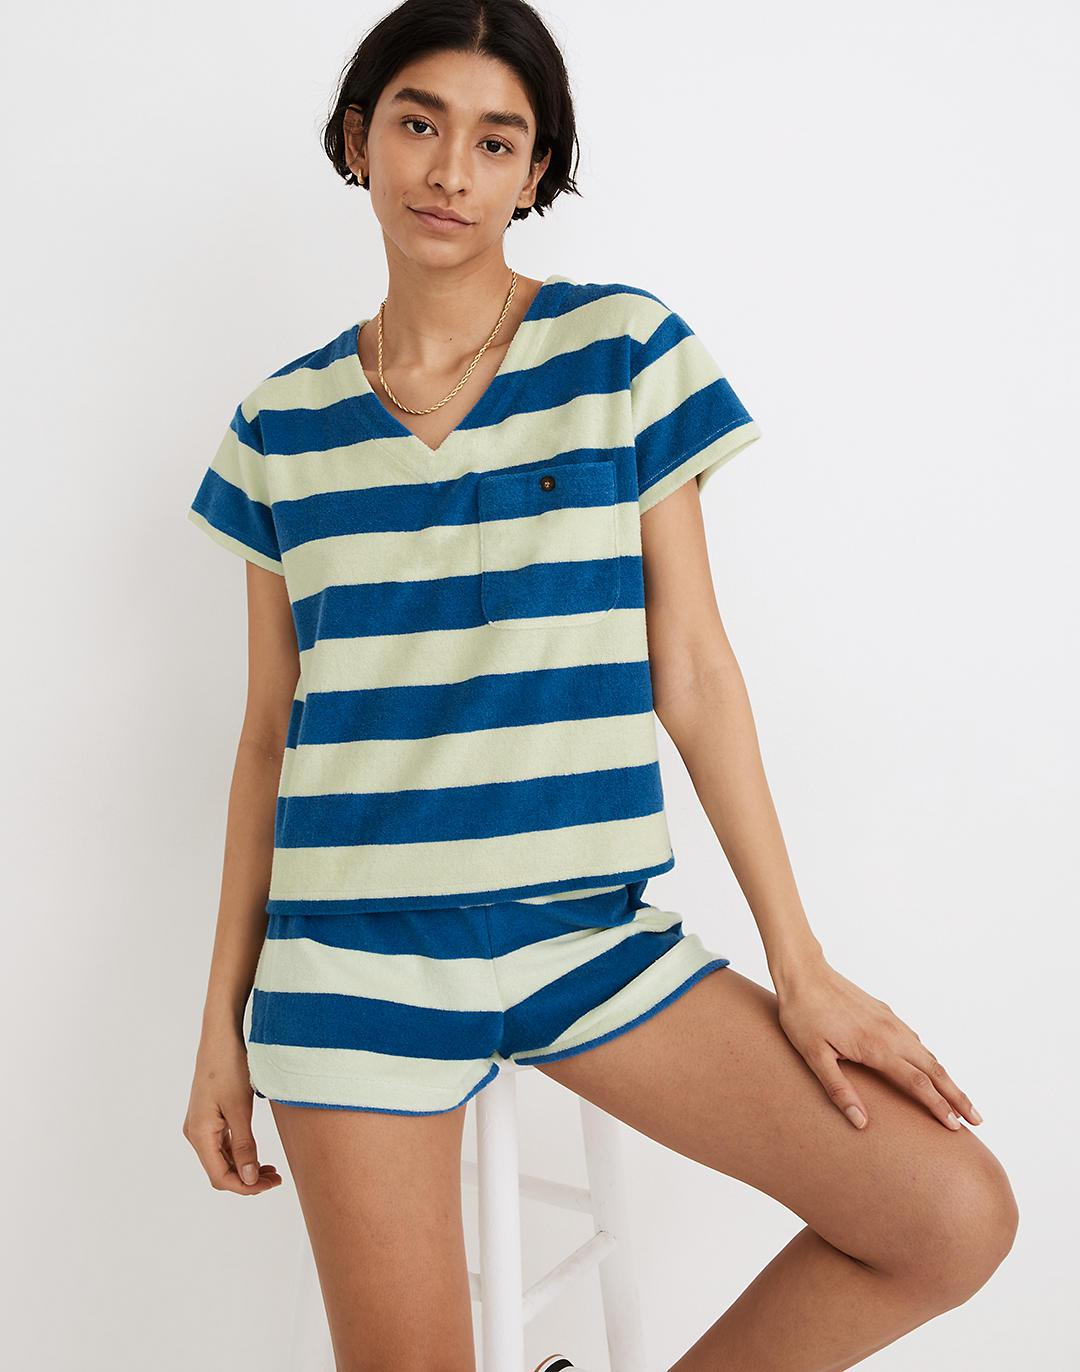 MWL Retroterry V-Neck Pocket Top in Rugby Stripe